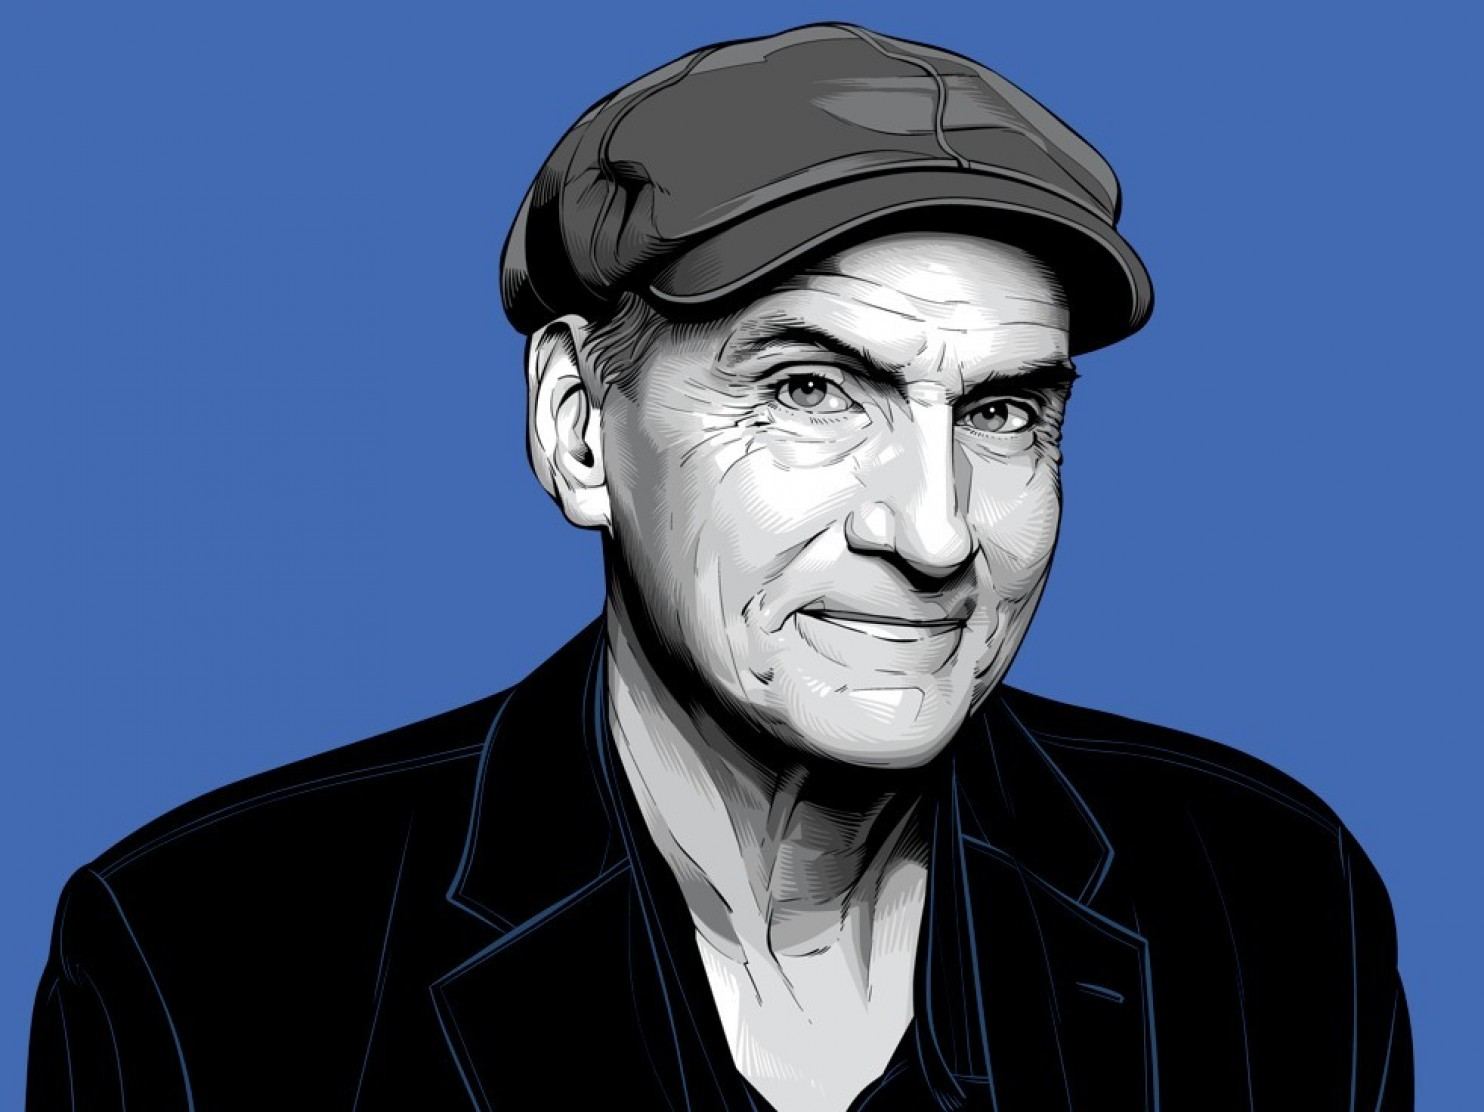 march 12 1948 happy birthday sweet baby james taylor. Black Bedroom Furniture Sets. Home Design Ideas